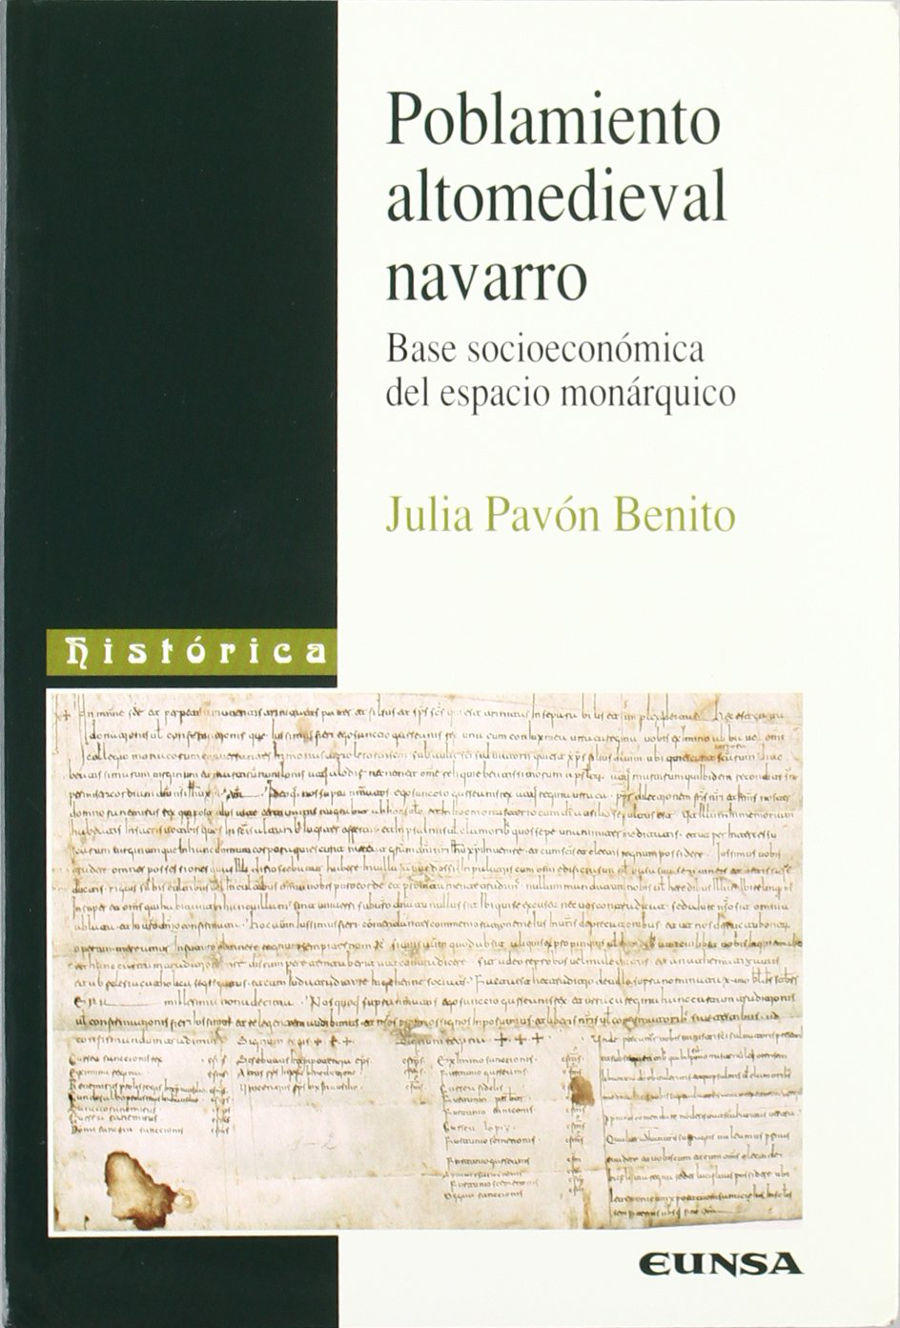 Poblamiento altomedieval navarro Book Cover